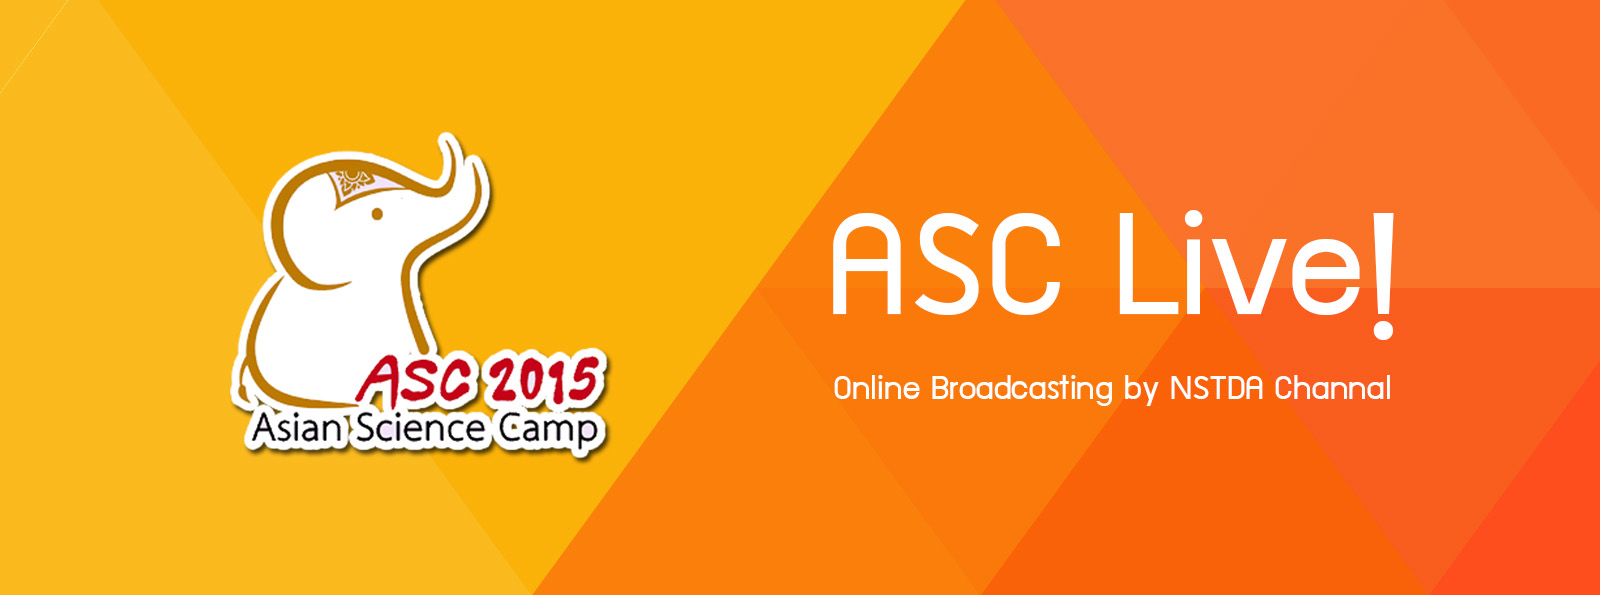 Watch ASC2015 Online